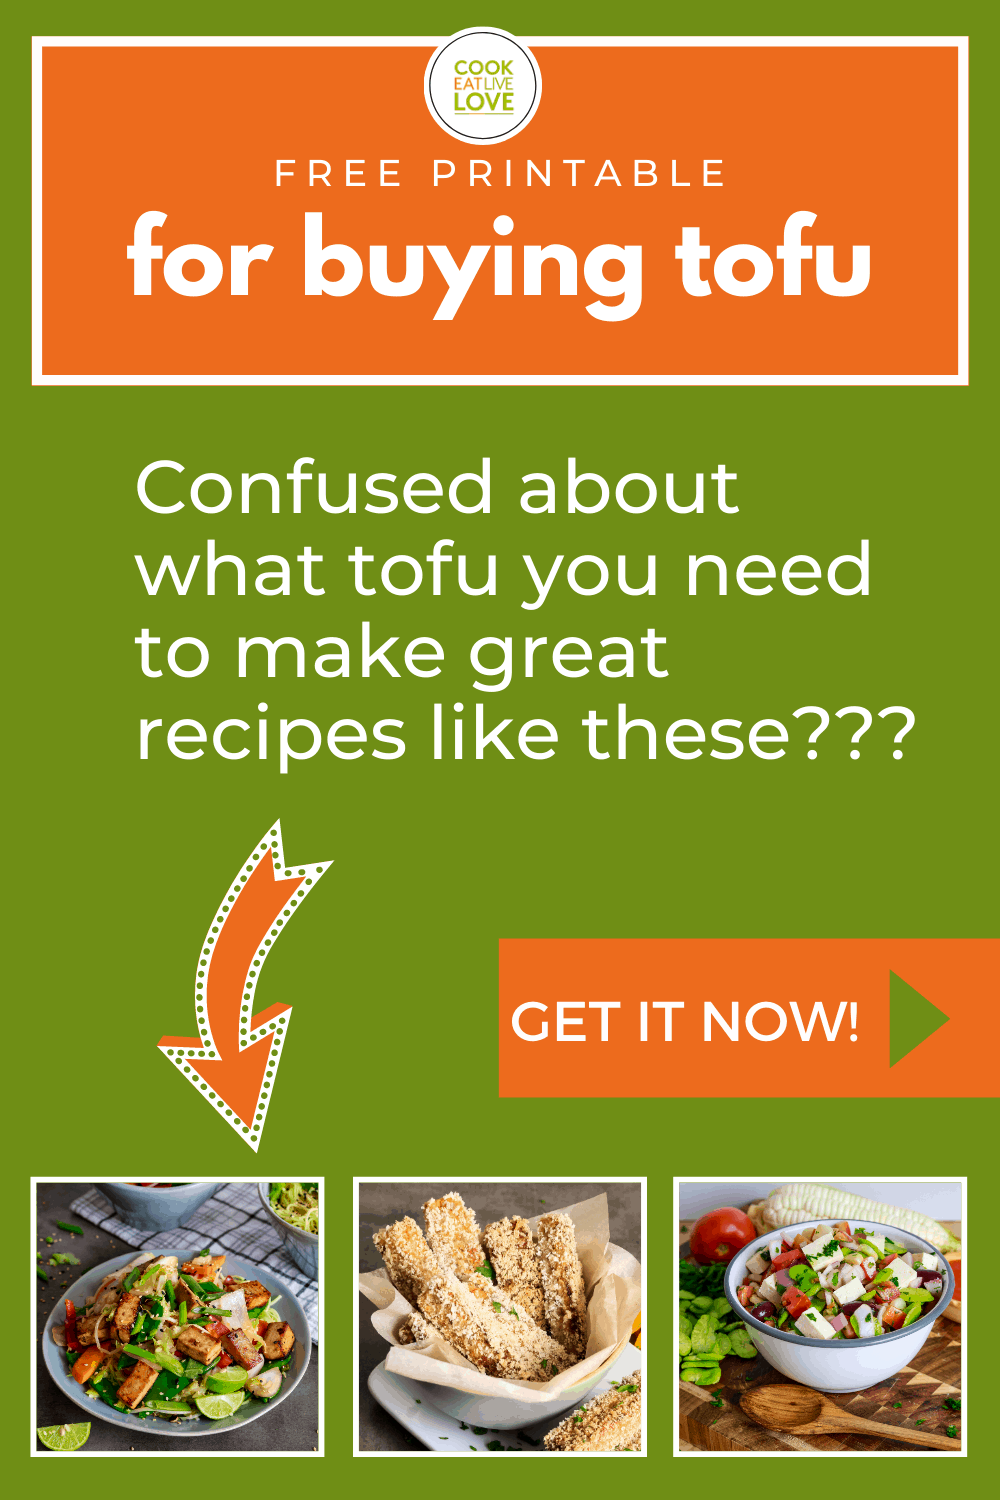 Sign up for freebie tofu buying guide.